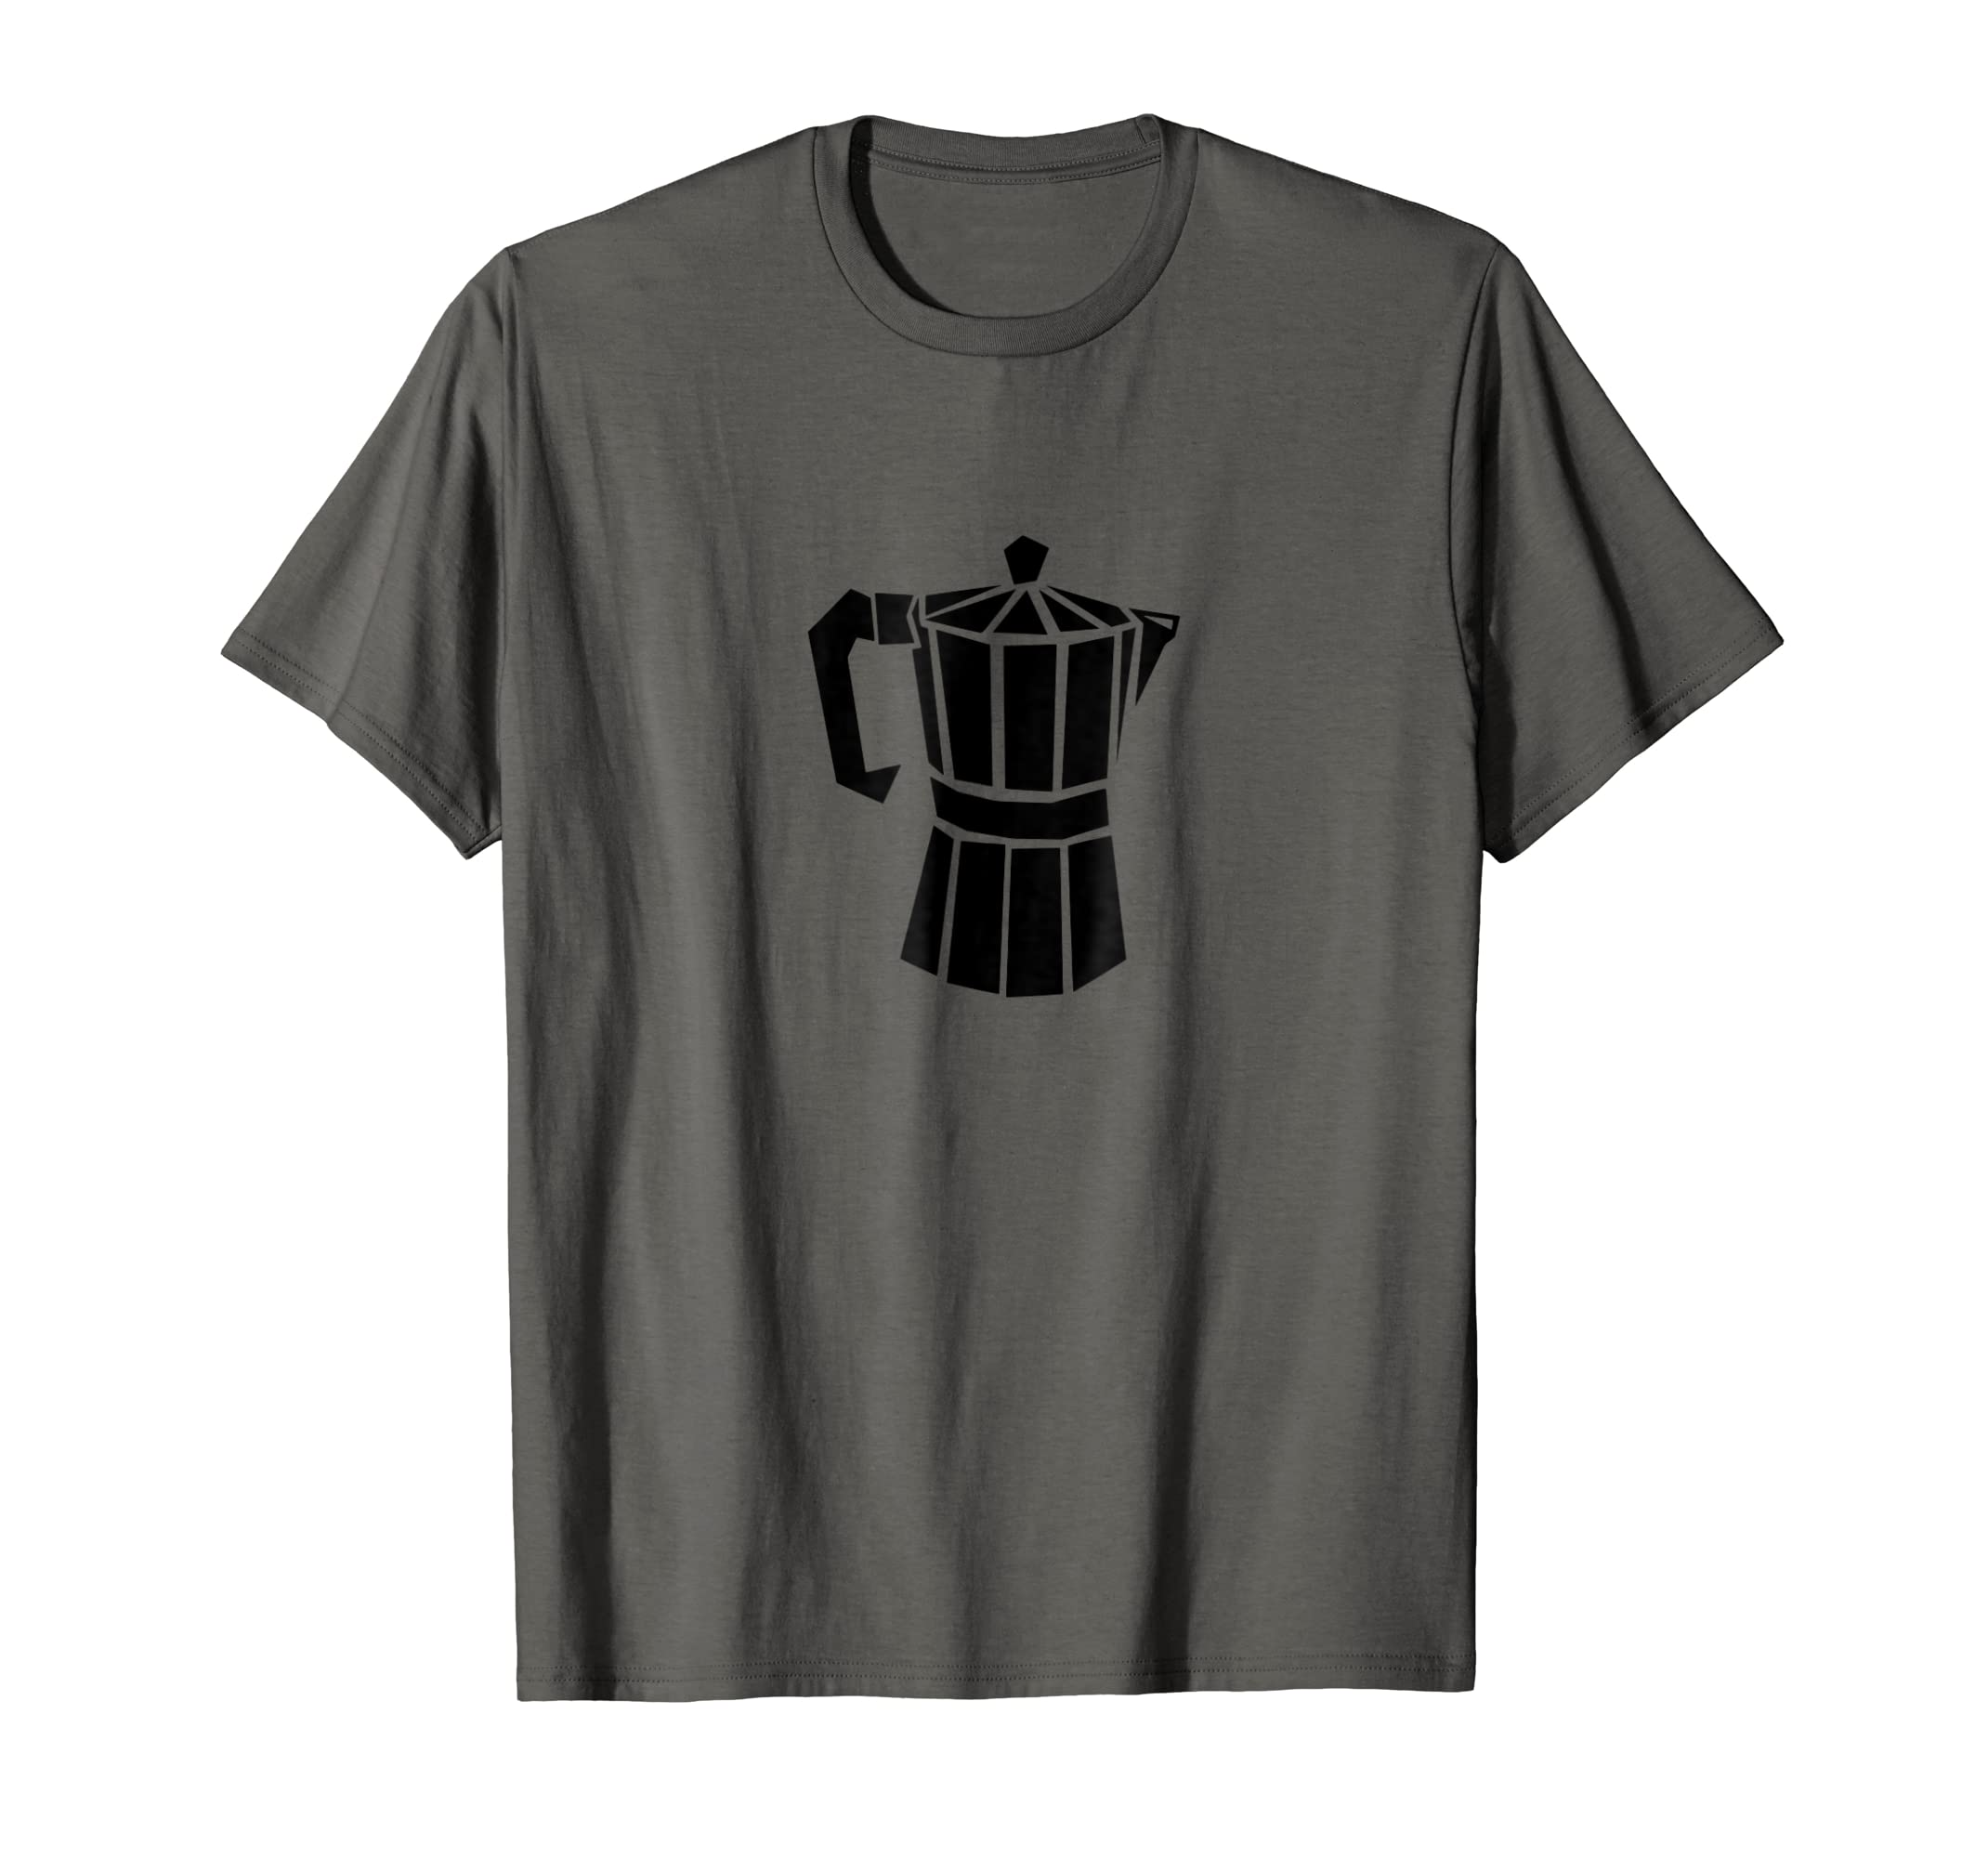 Amazon.com: Cafetera T-Shirt: Clothing